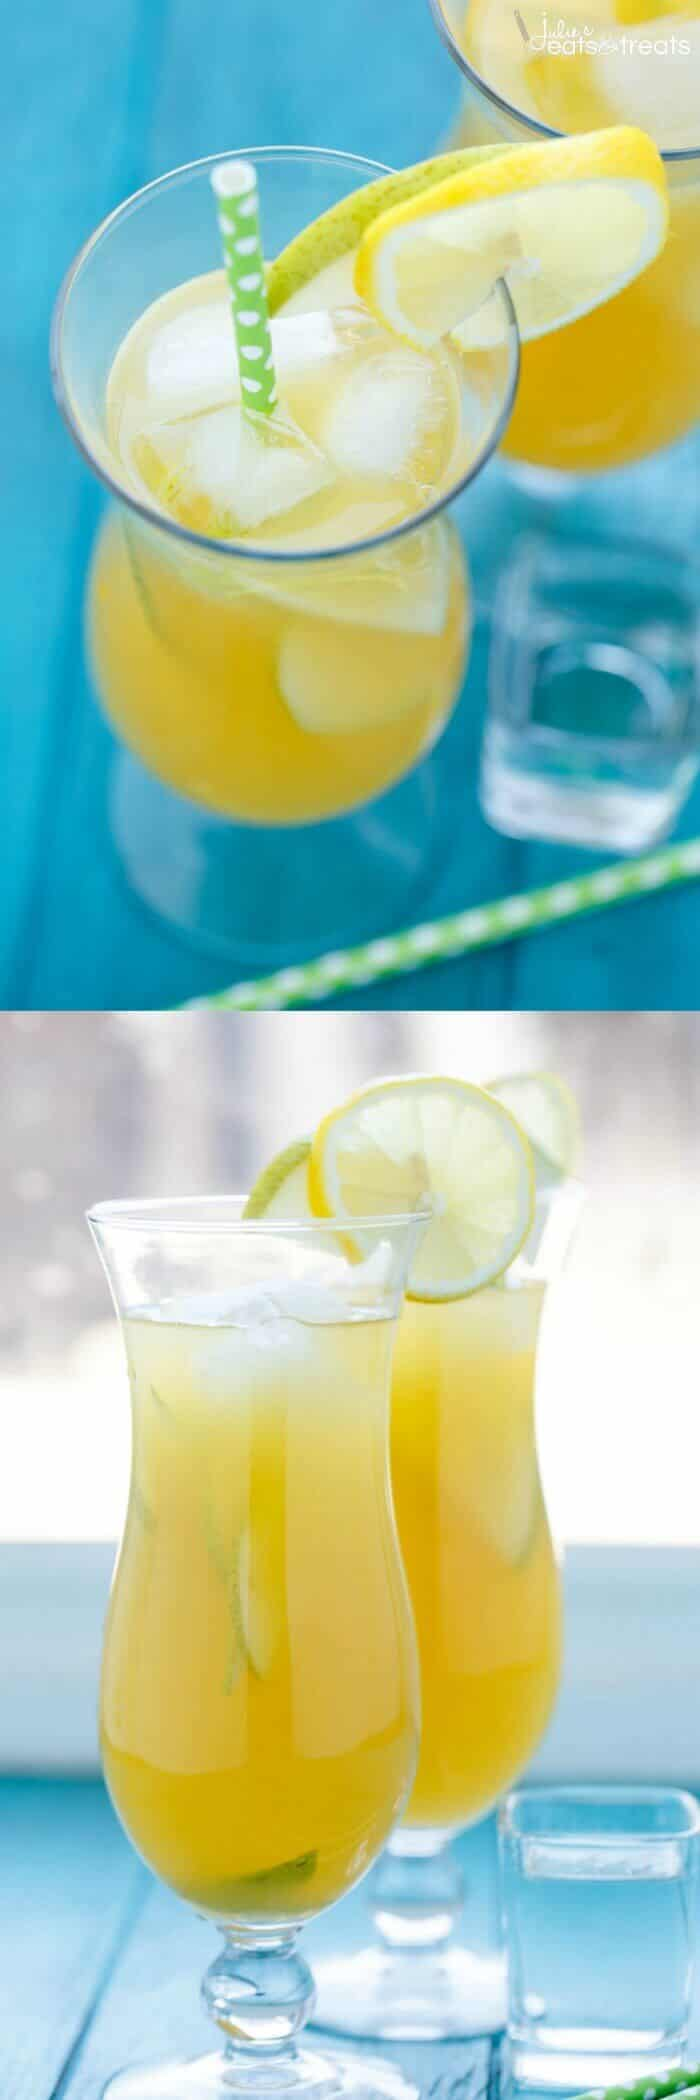 Pineapple fruit cocktail drink recipe julie 39 s eats treats for Easy fruity mixed drinks